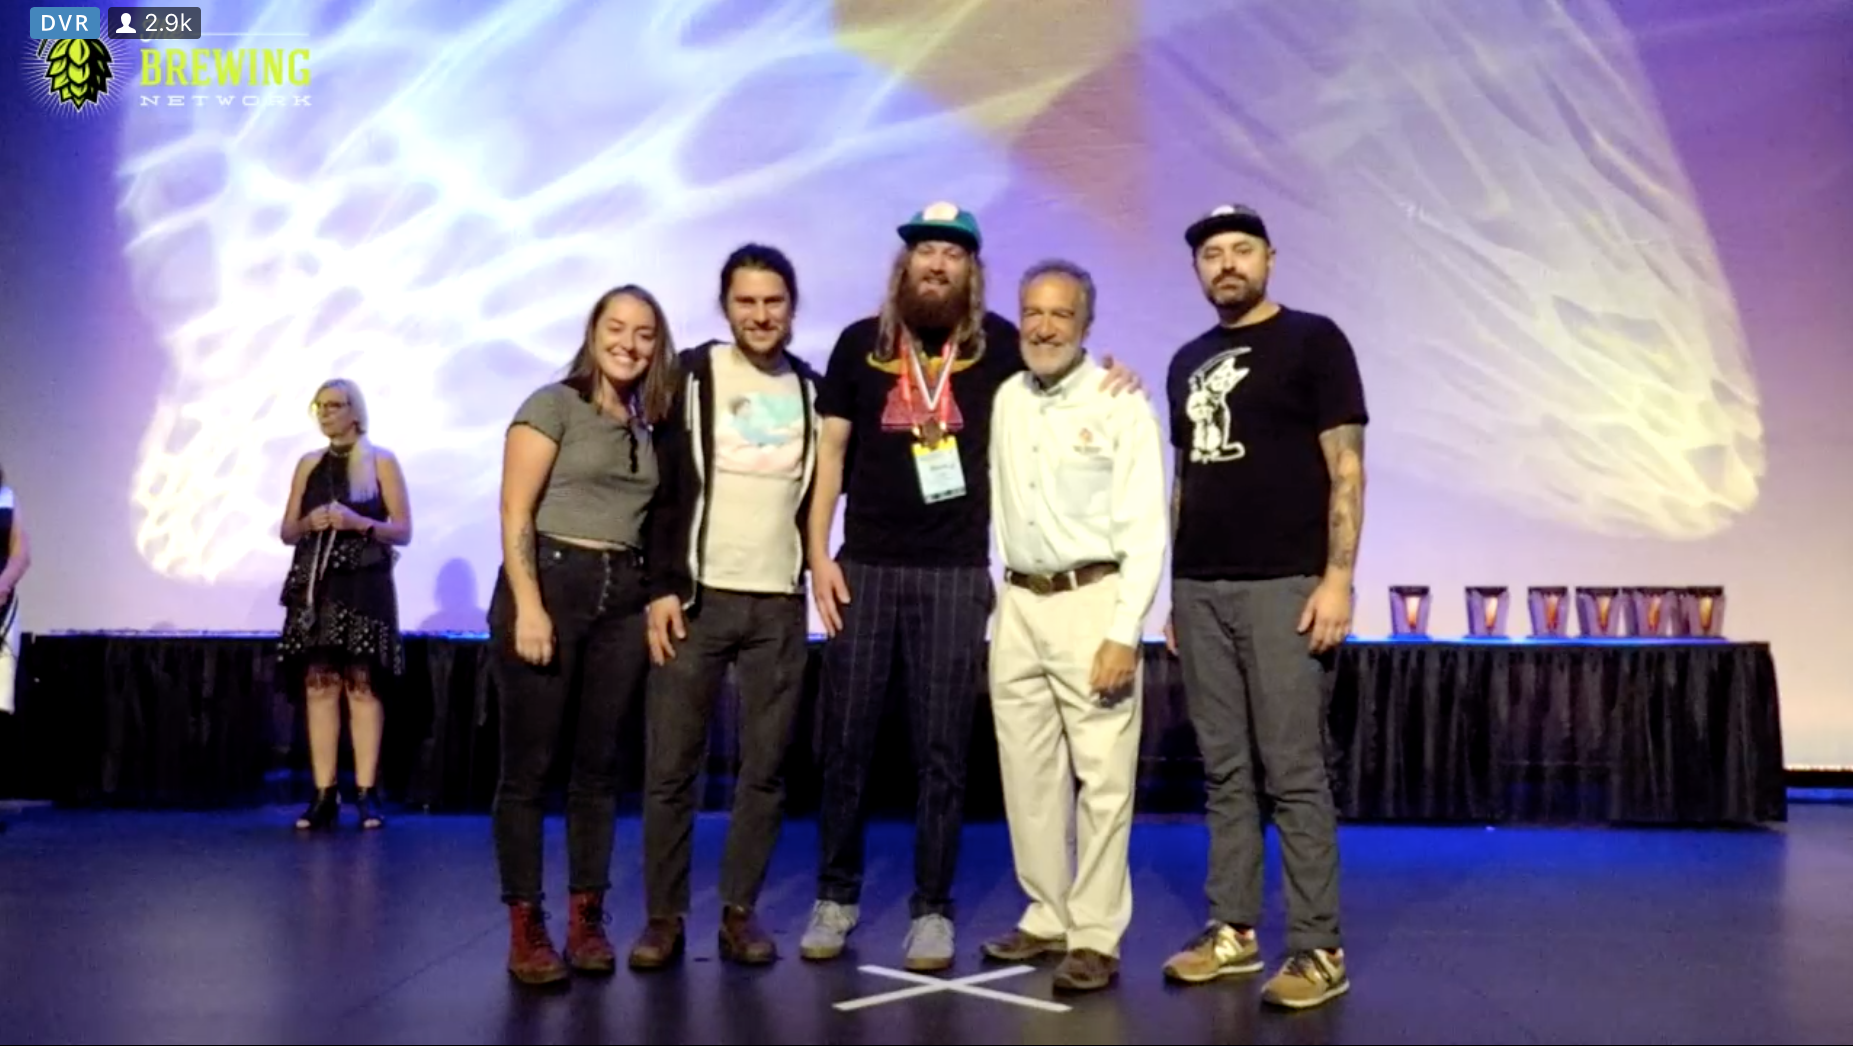 image of Cloudburst Brewing receiving the Bronze Medal in Fresh Hop courtesy of The Brewing Network